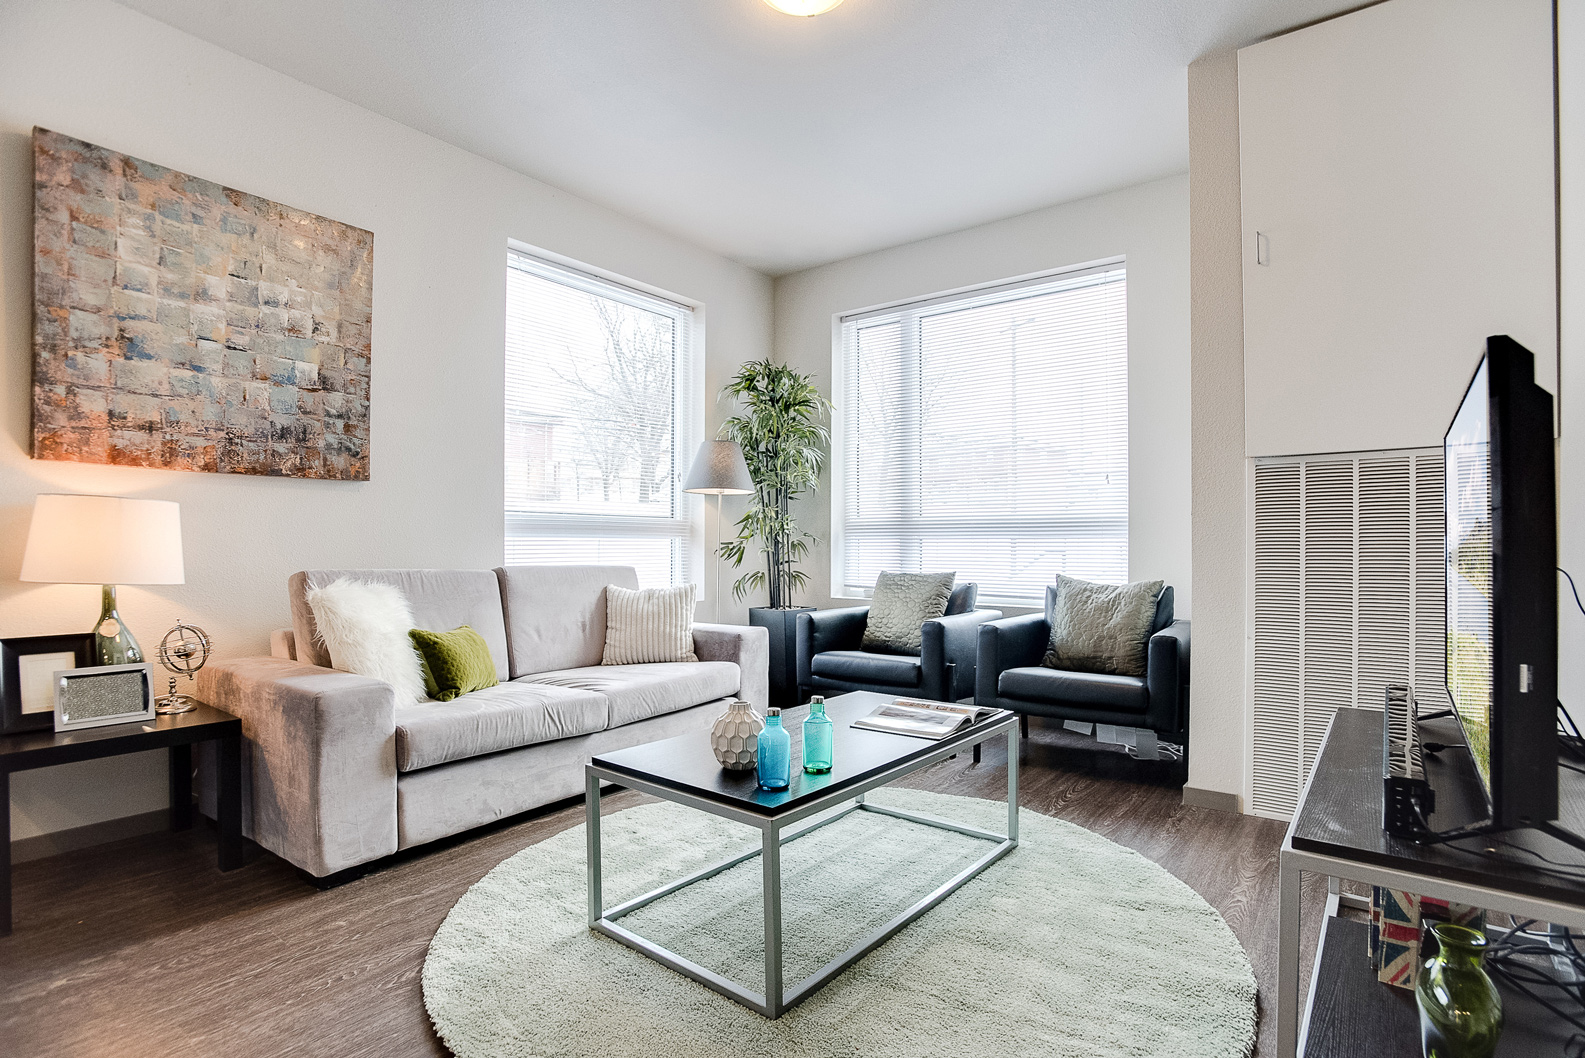 Staging Small Spaces, AirBnB Home Staging in Minneapolis, Staged Living Room #117 ~ Staged by Lionheart